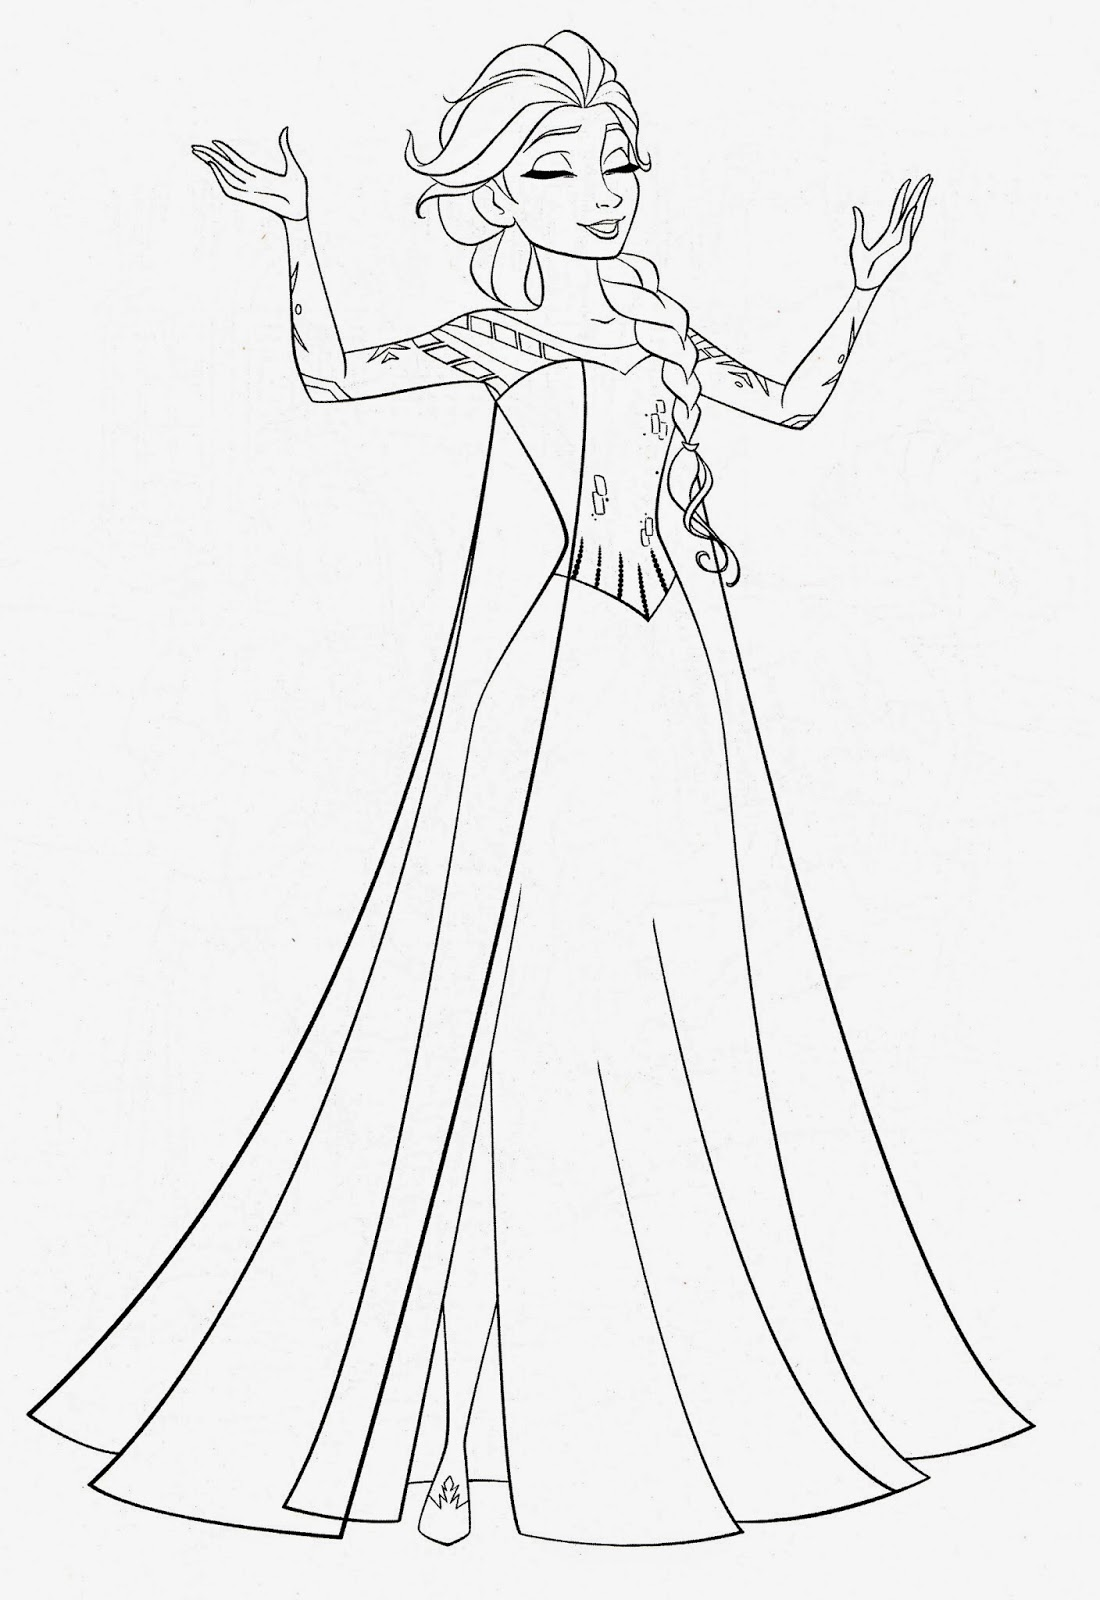 frozen movie coloring pages frozen free to color for children frozen kids coloring pages movie coloring pages frozen